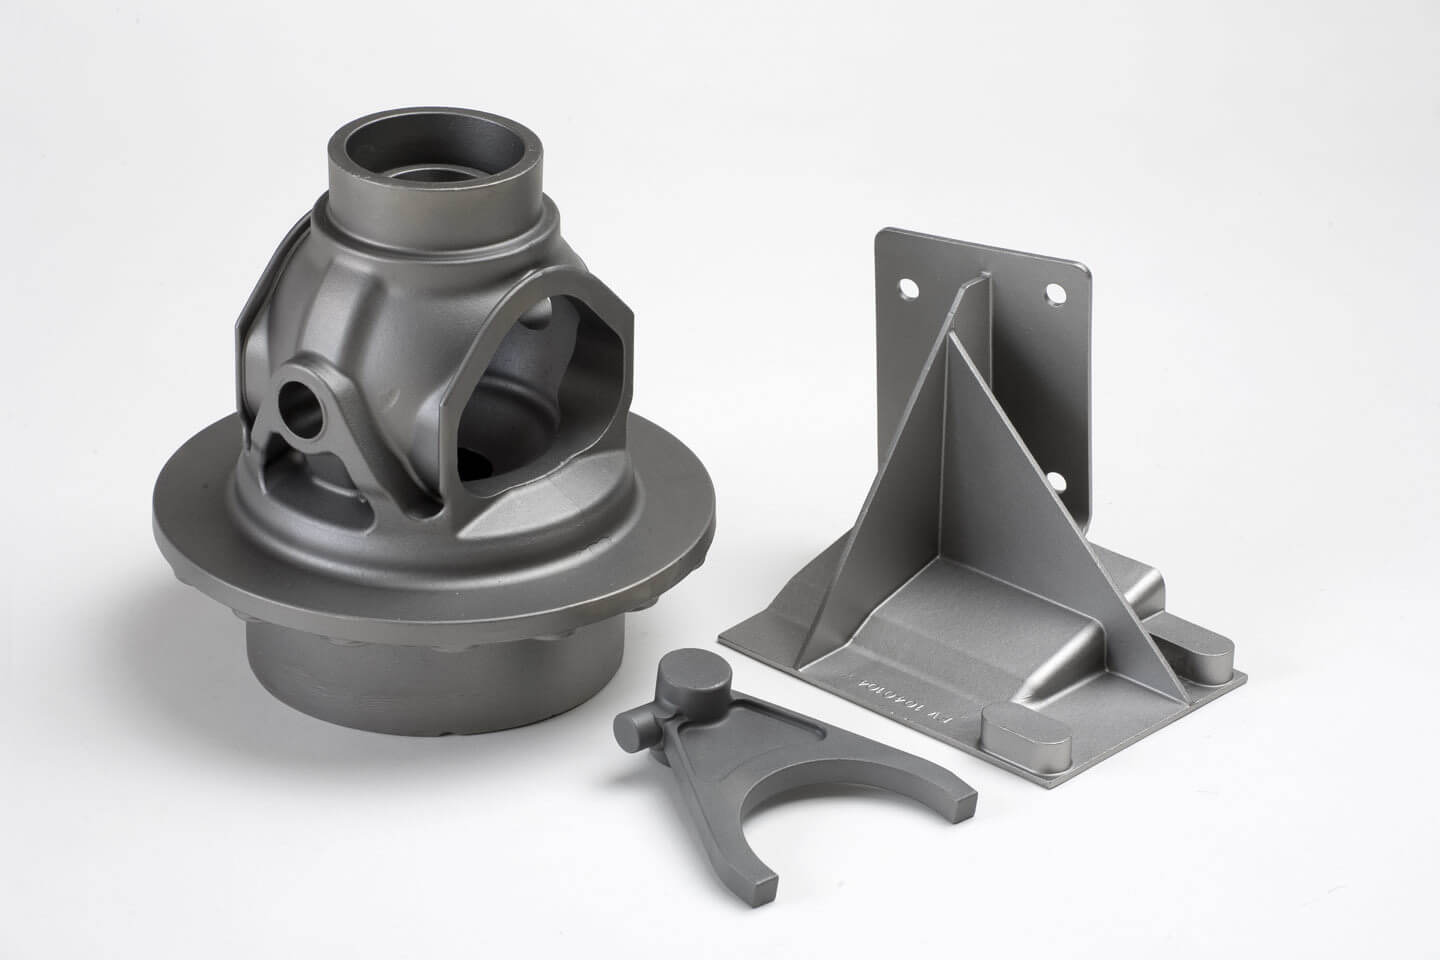 Metal prototyping, high precision die casting prototype